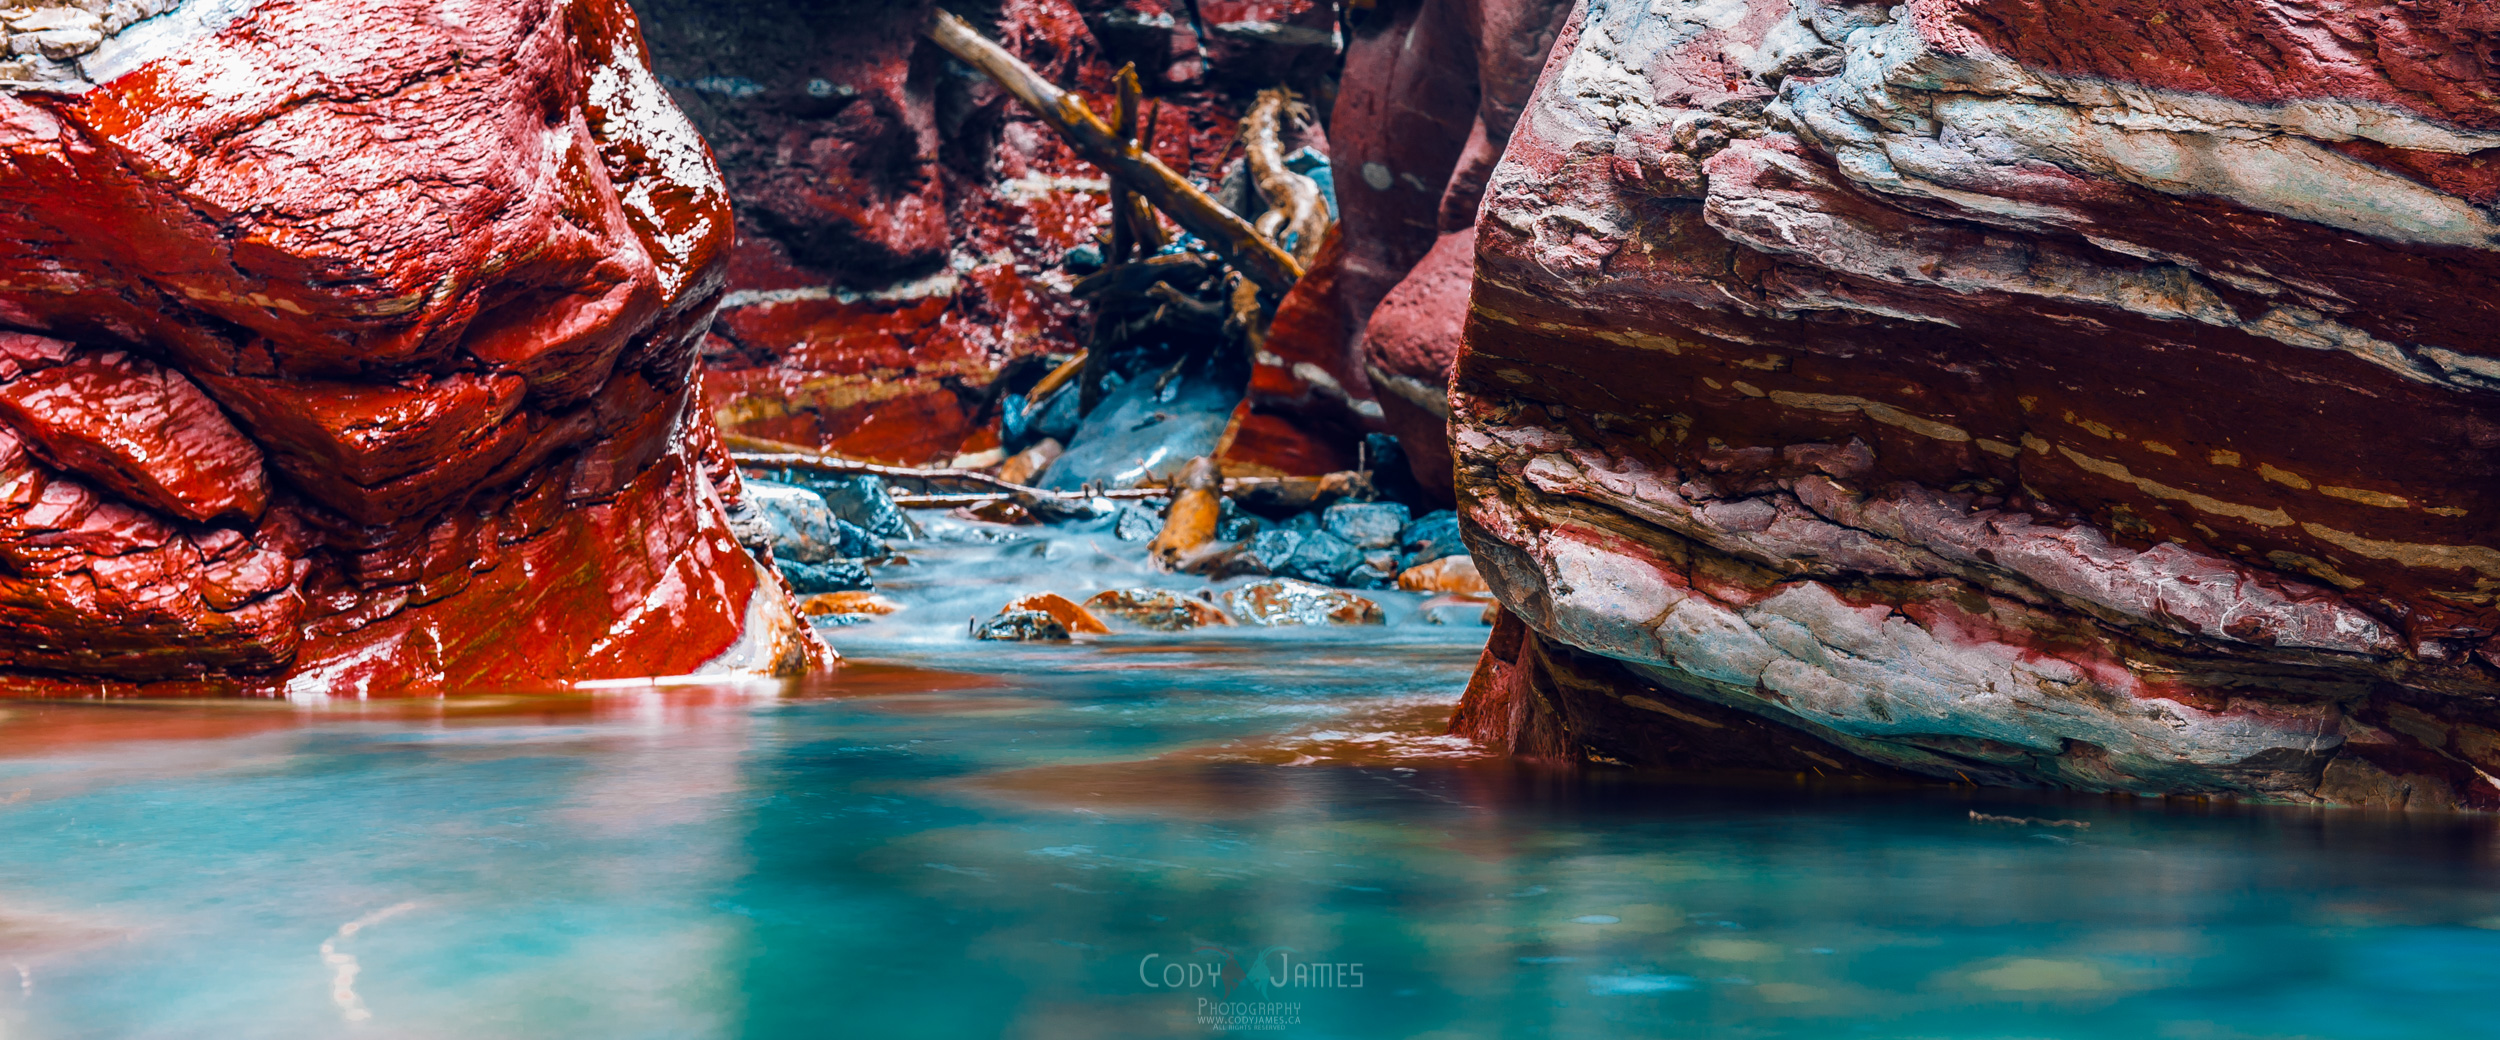 Calgary Photographer Cody James | Landscape Photographer